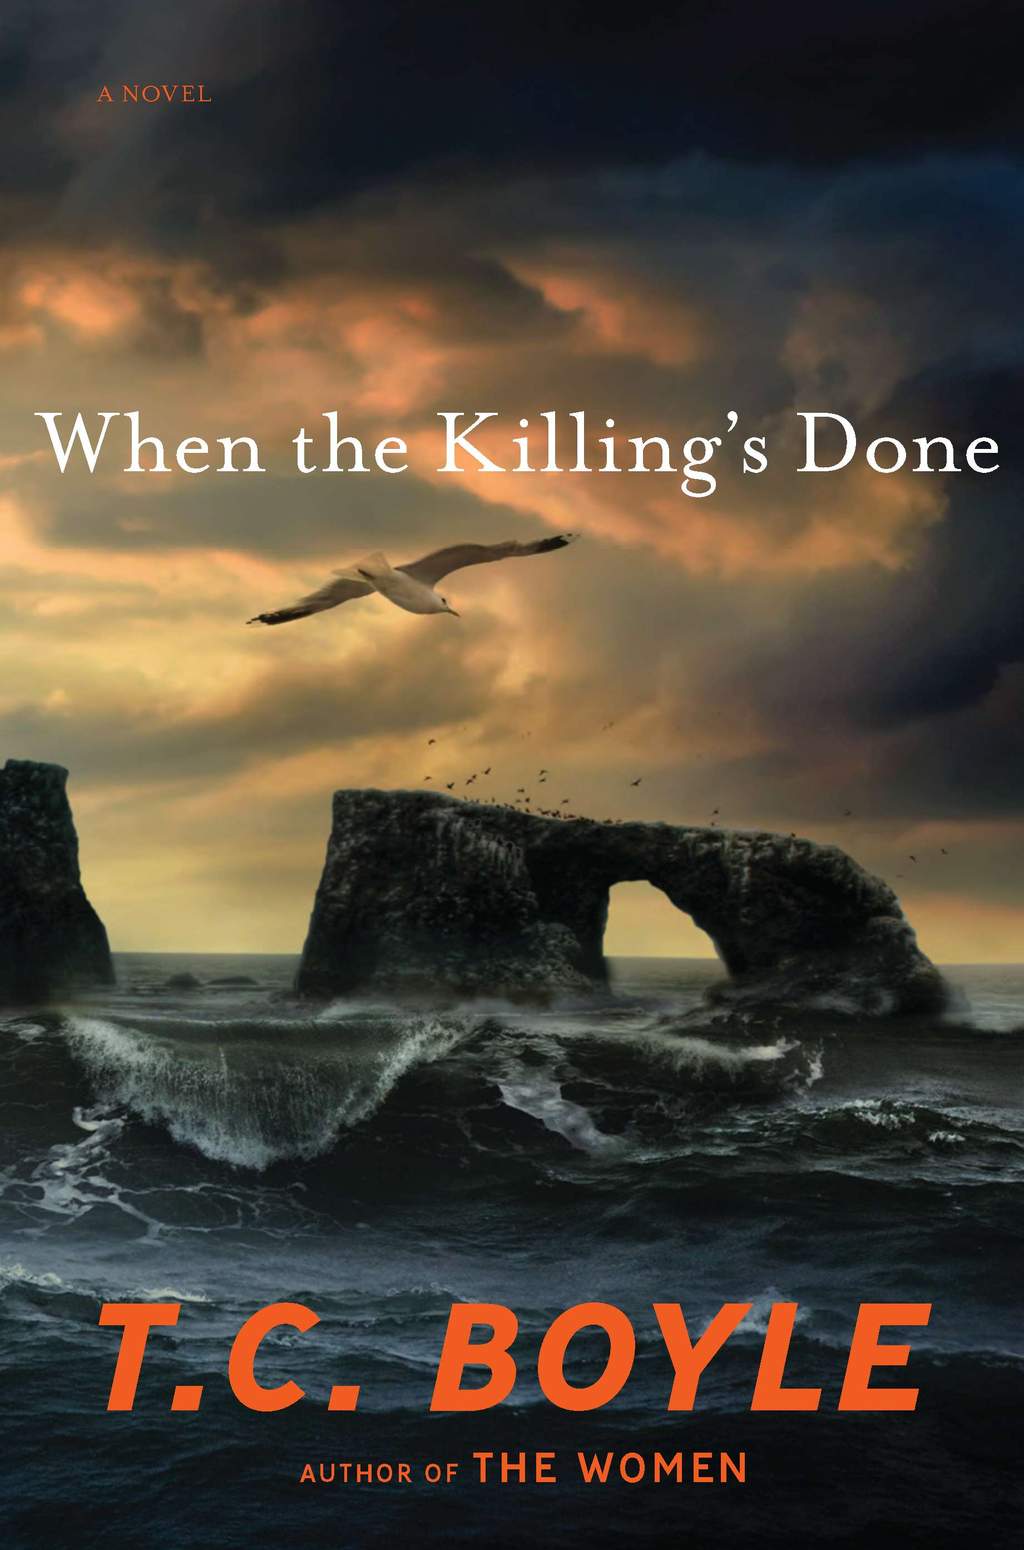 When the Killing's Done By: T.C. Boyle